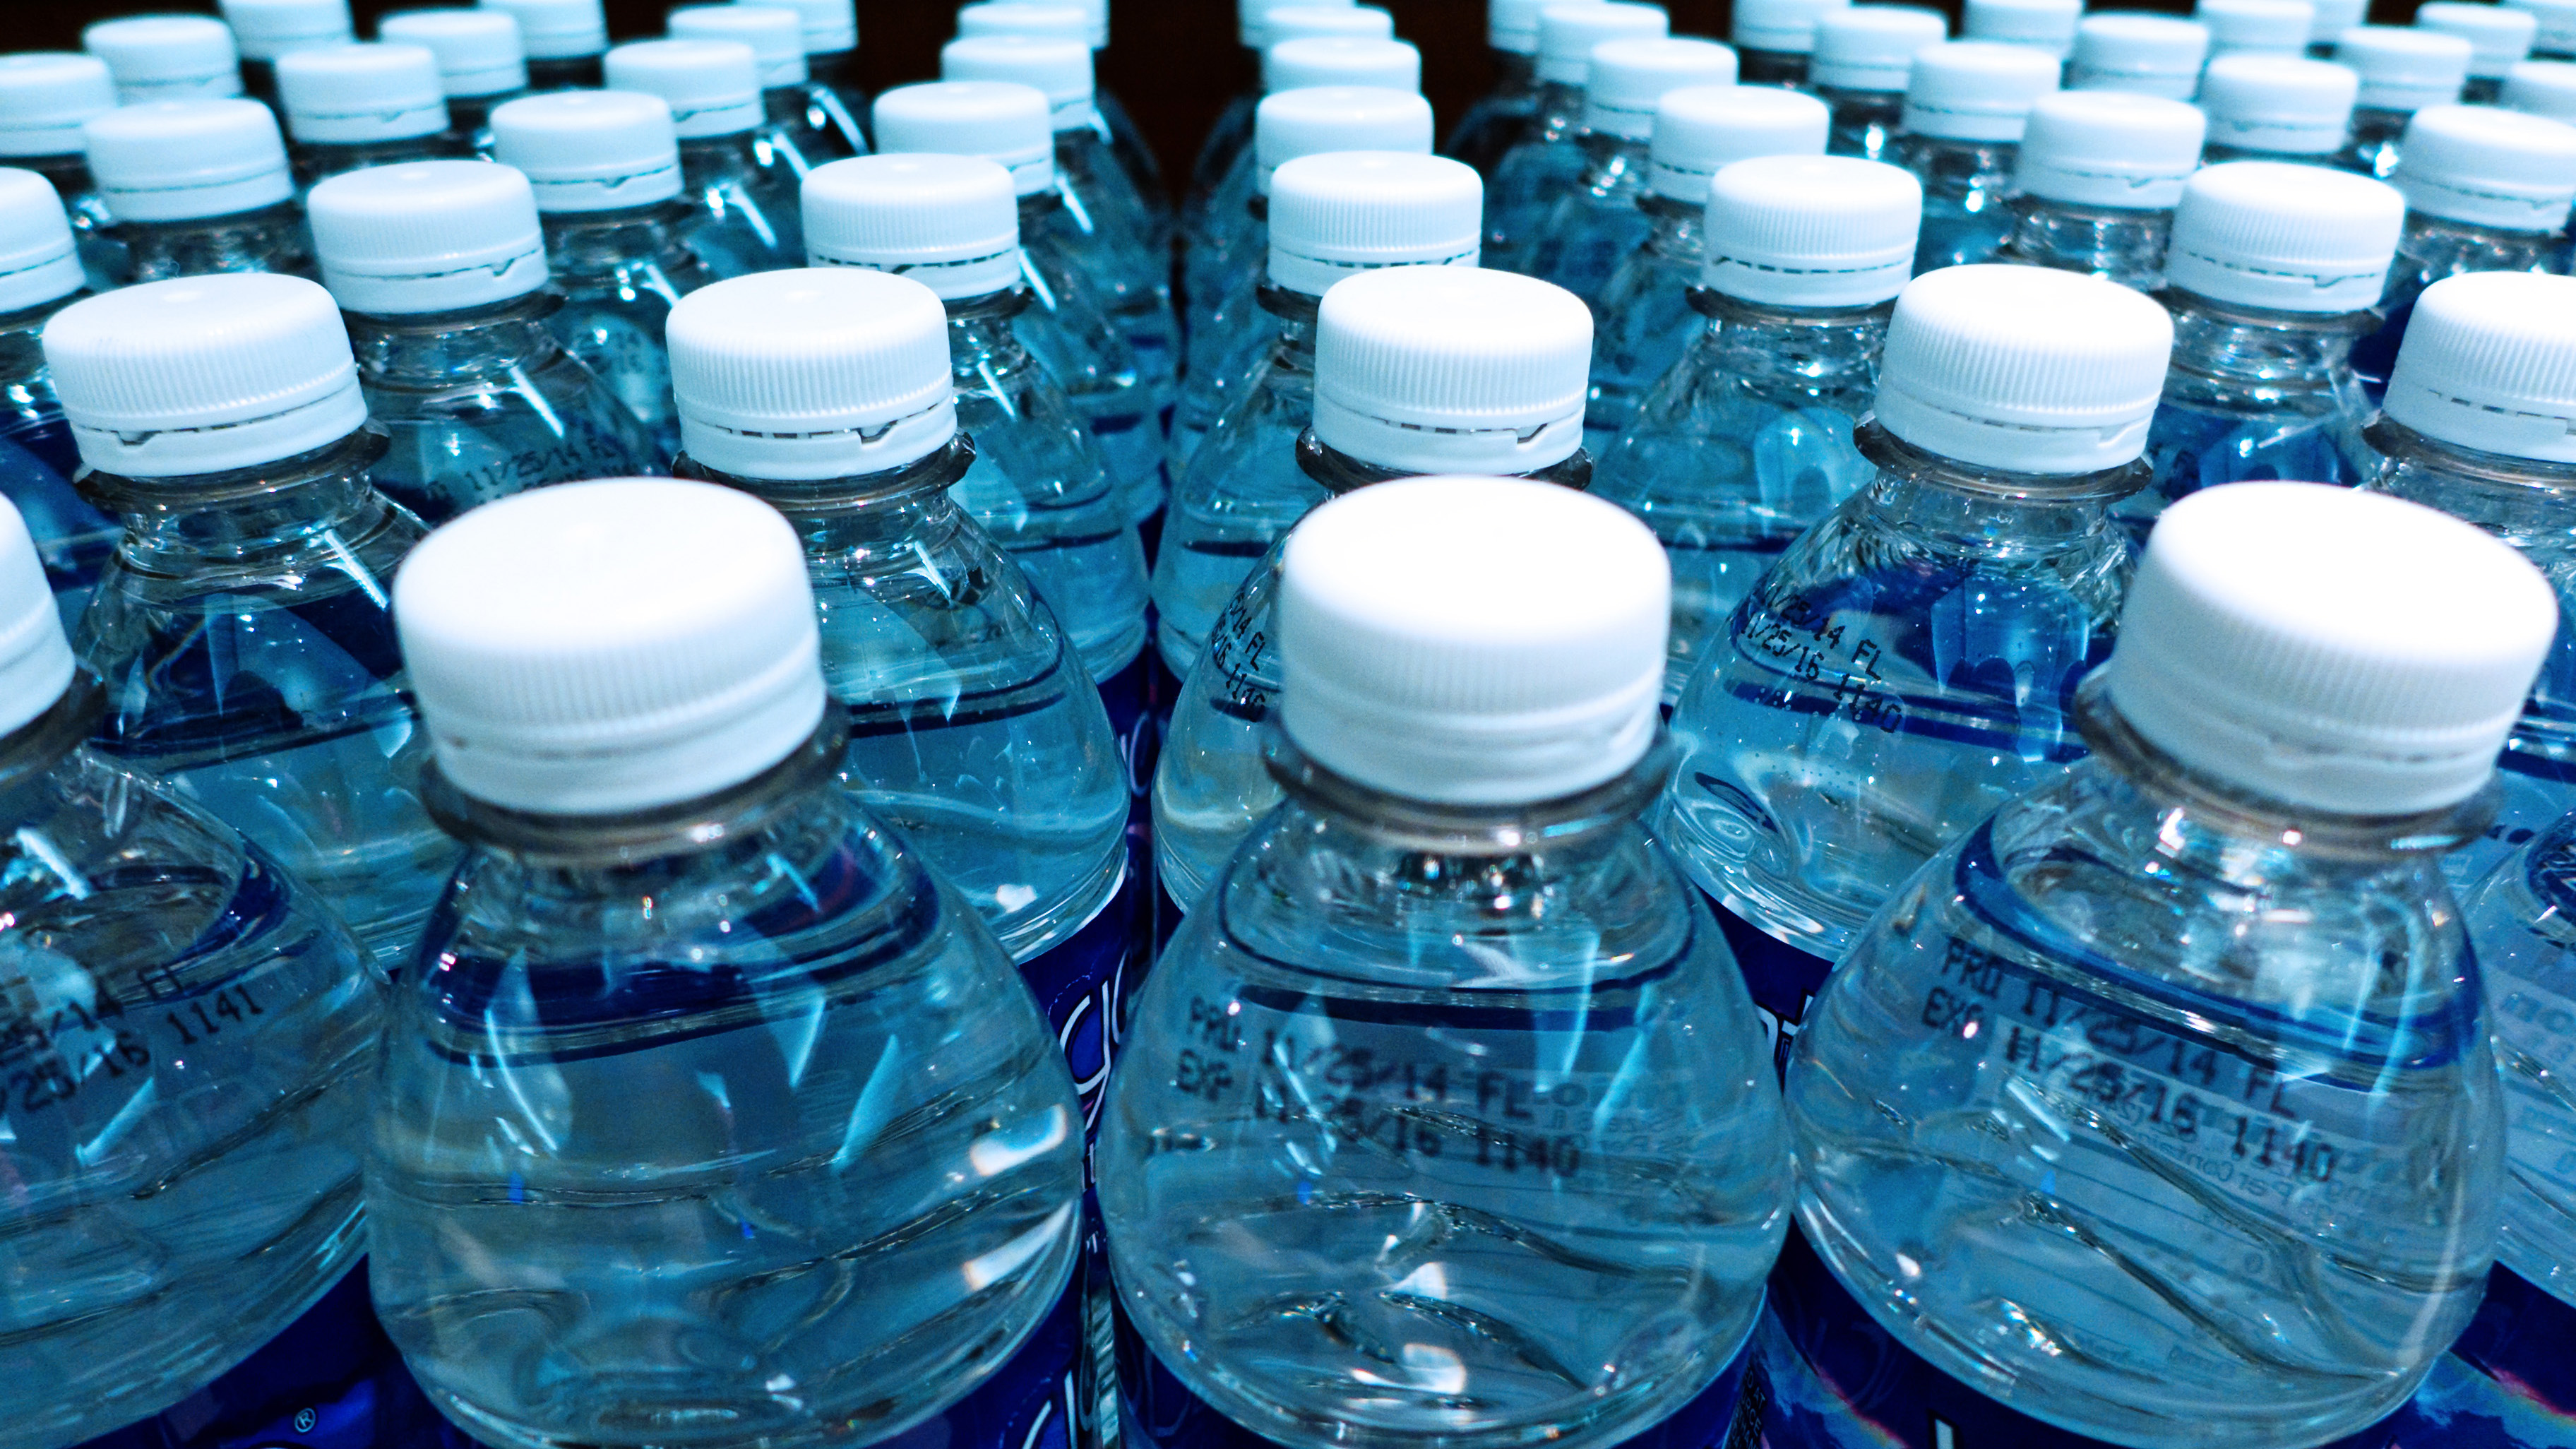 How do you create fossil-fuel free plastic bottles? Nestle